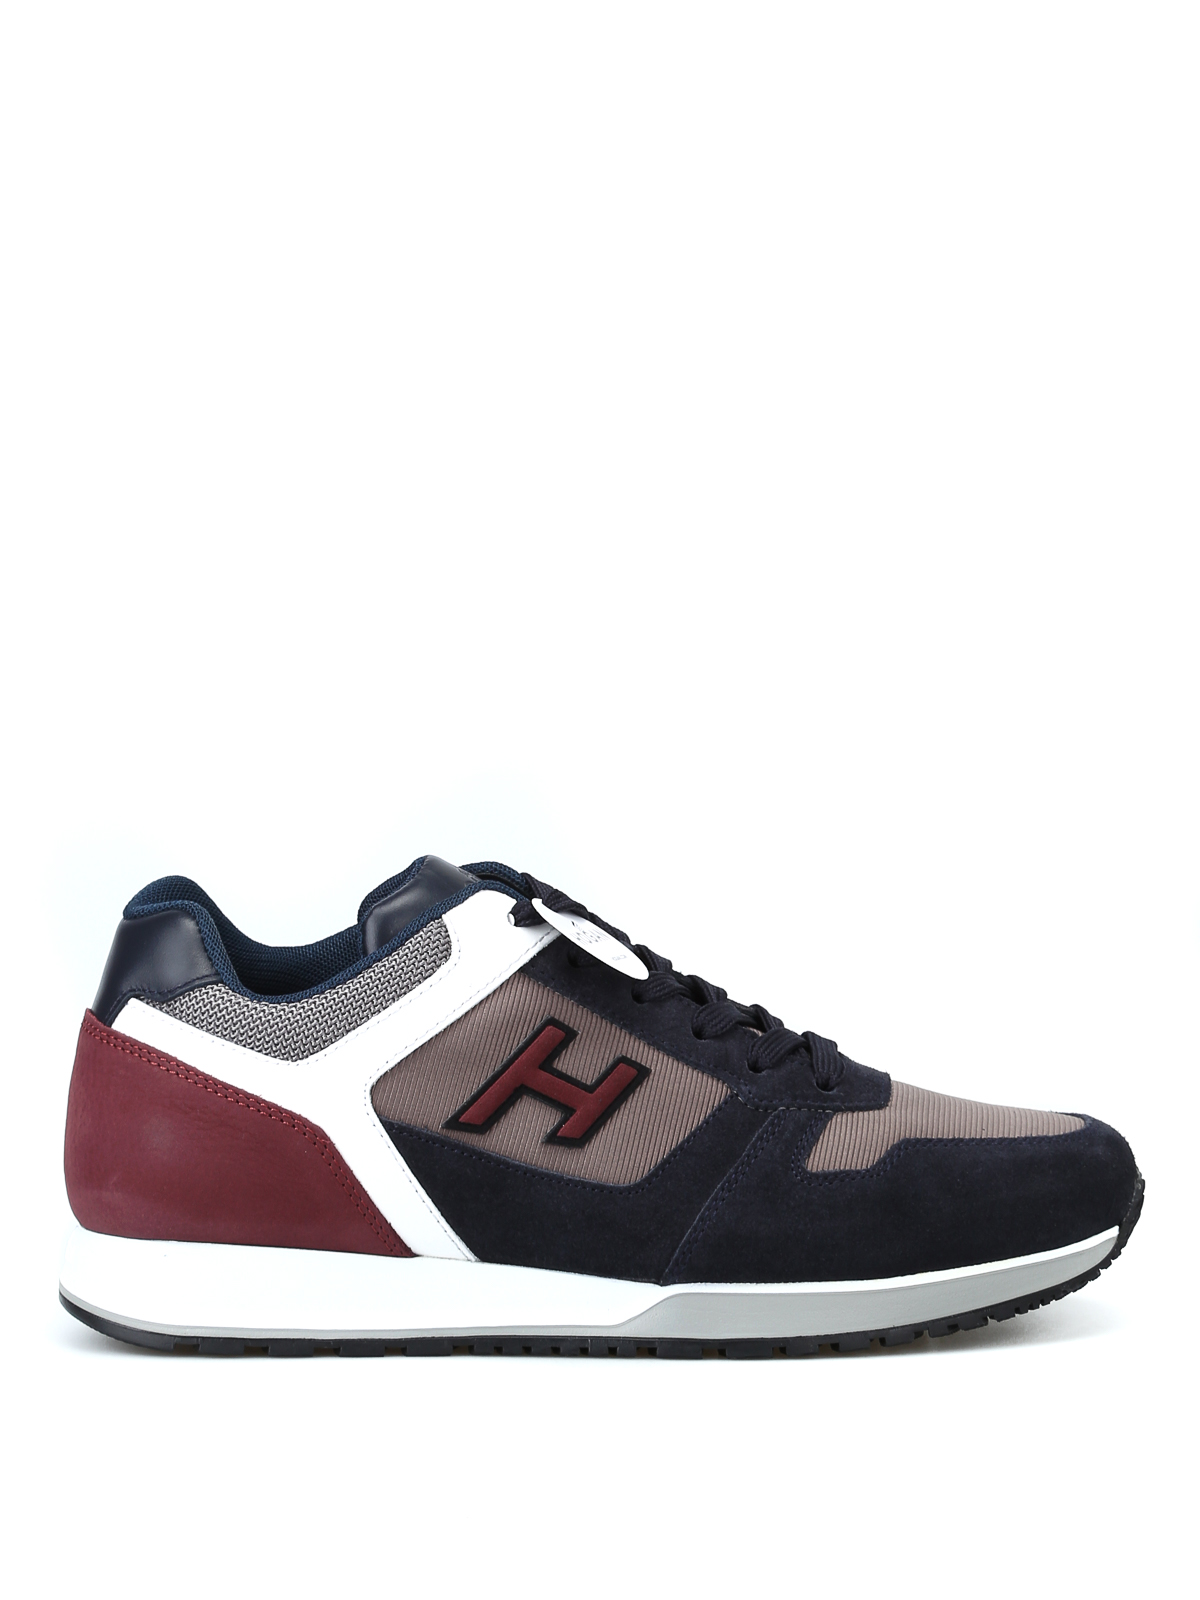 Hogan - H321 blue and burgundy sneakers - trainers ...